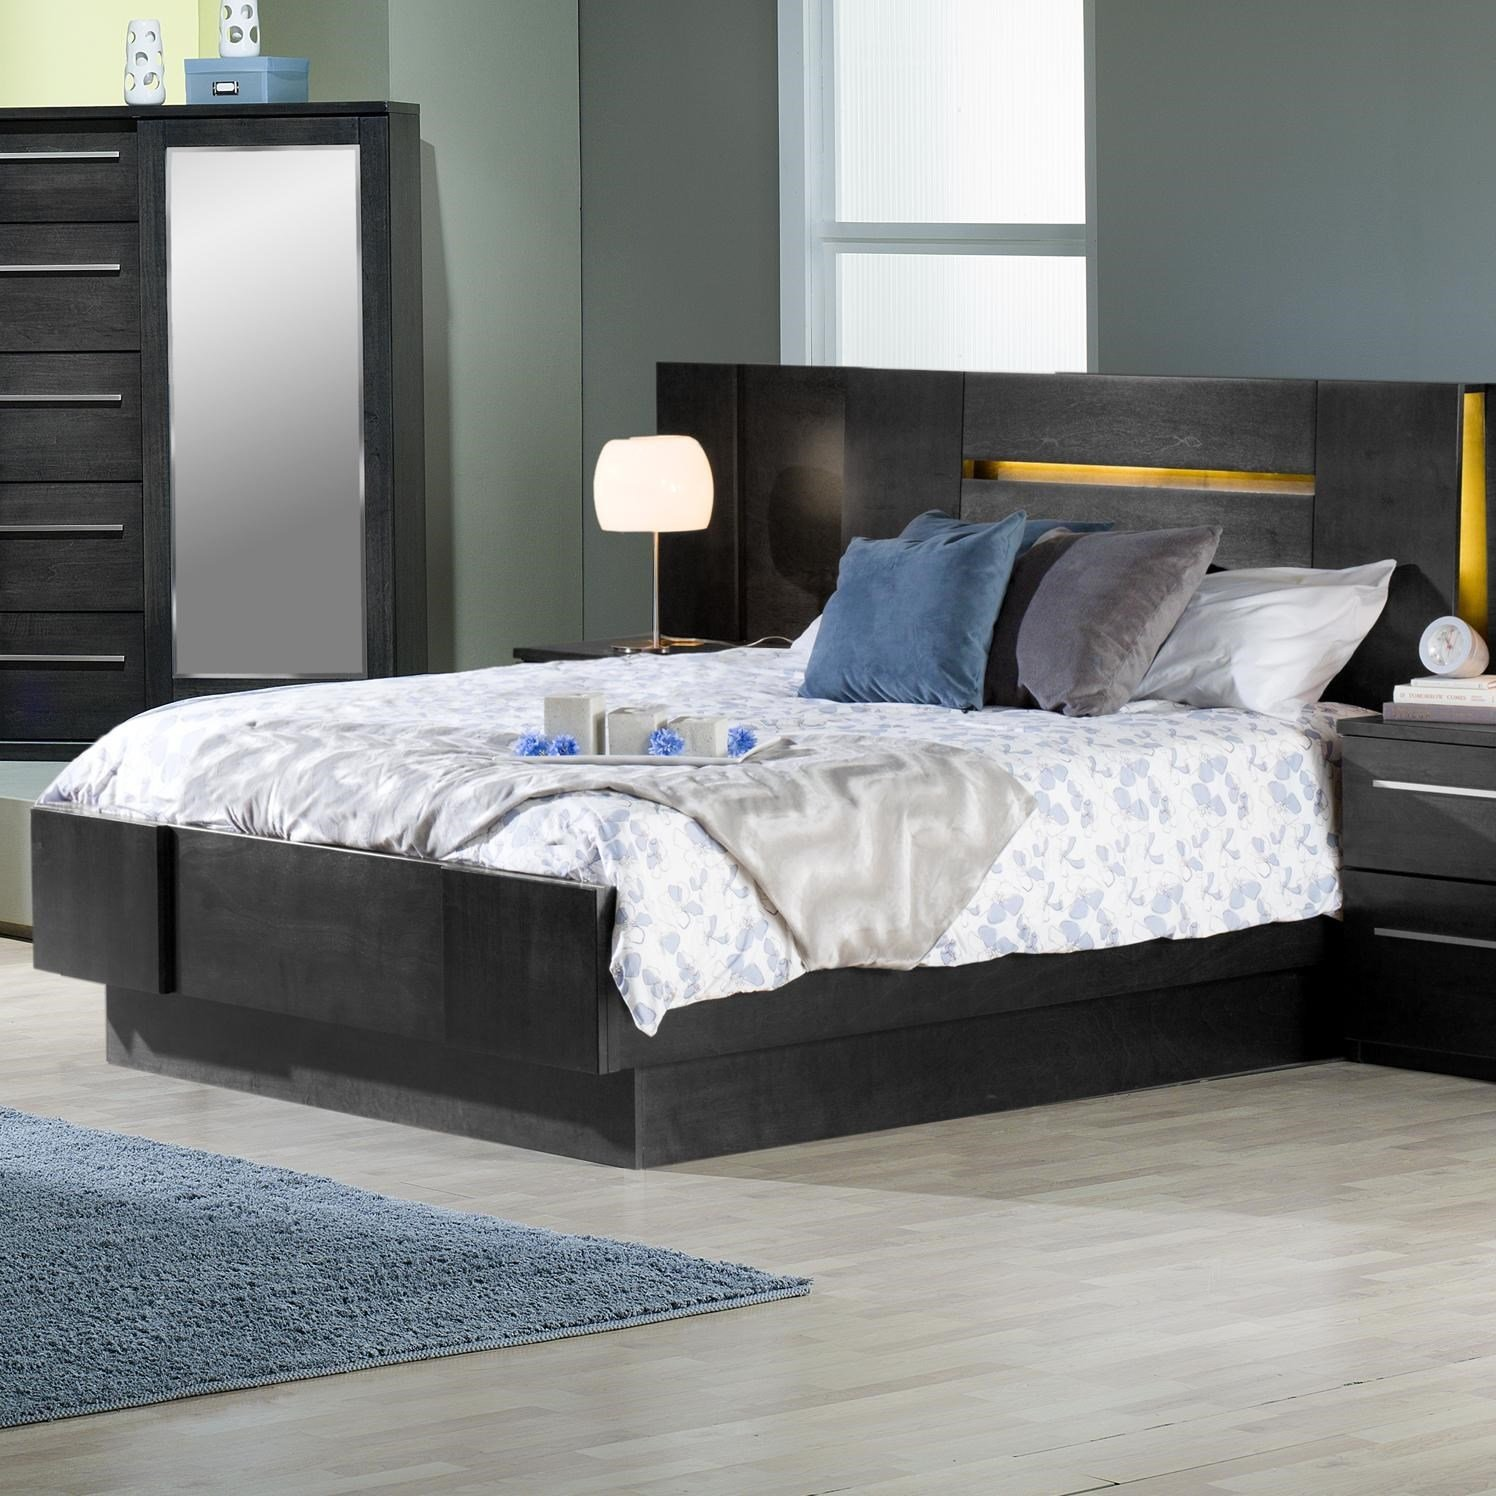 Best Defehr Milano King Platform Bed With 2 Nightstands With Pictures